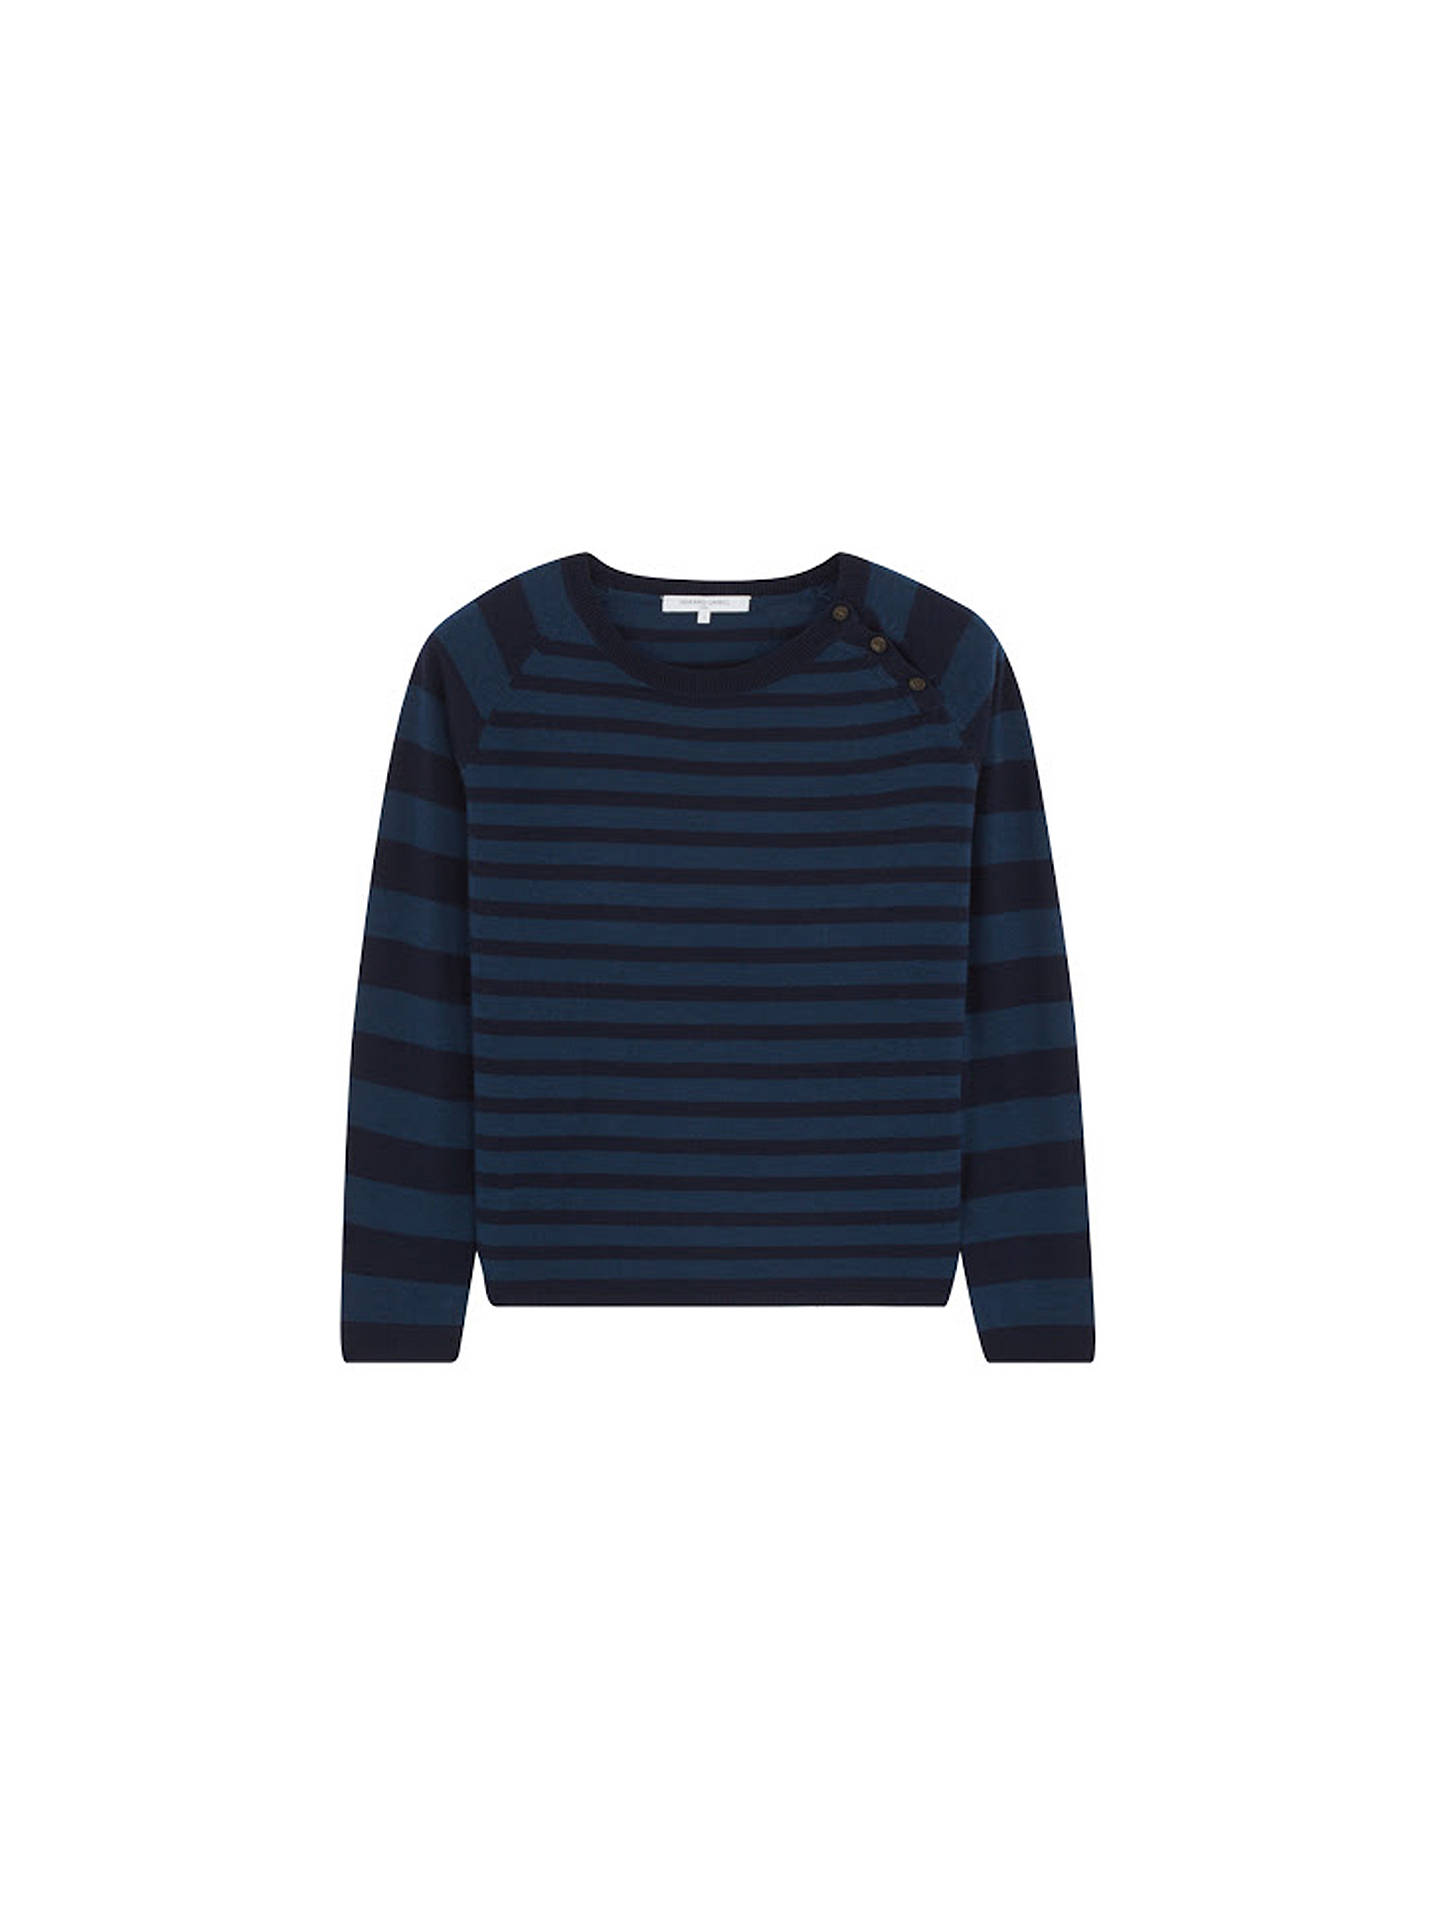 BuyGerard Darel Loulou Merino Wool Jumper, Dark Indigo, 8-10 Online at johnlewis.com